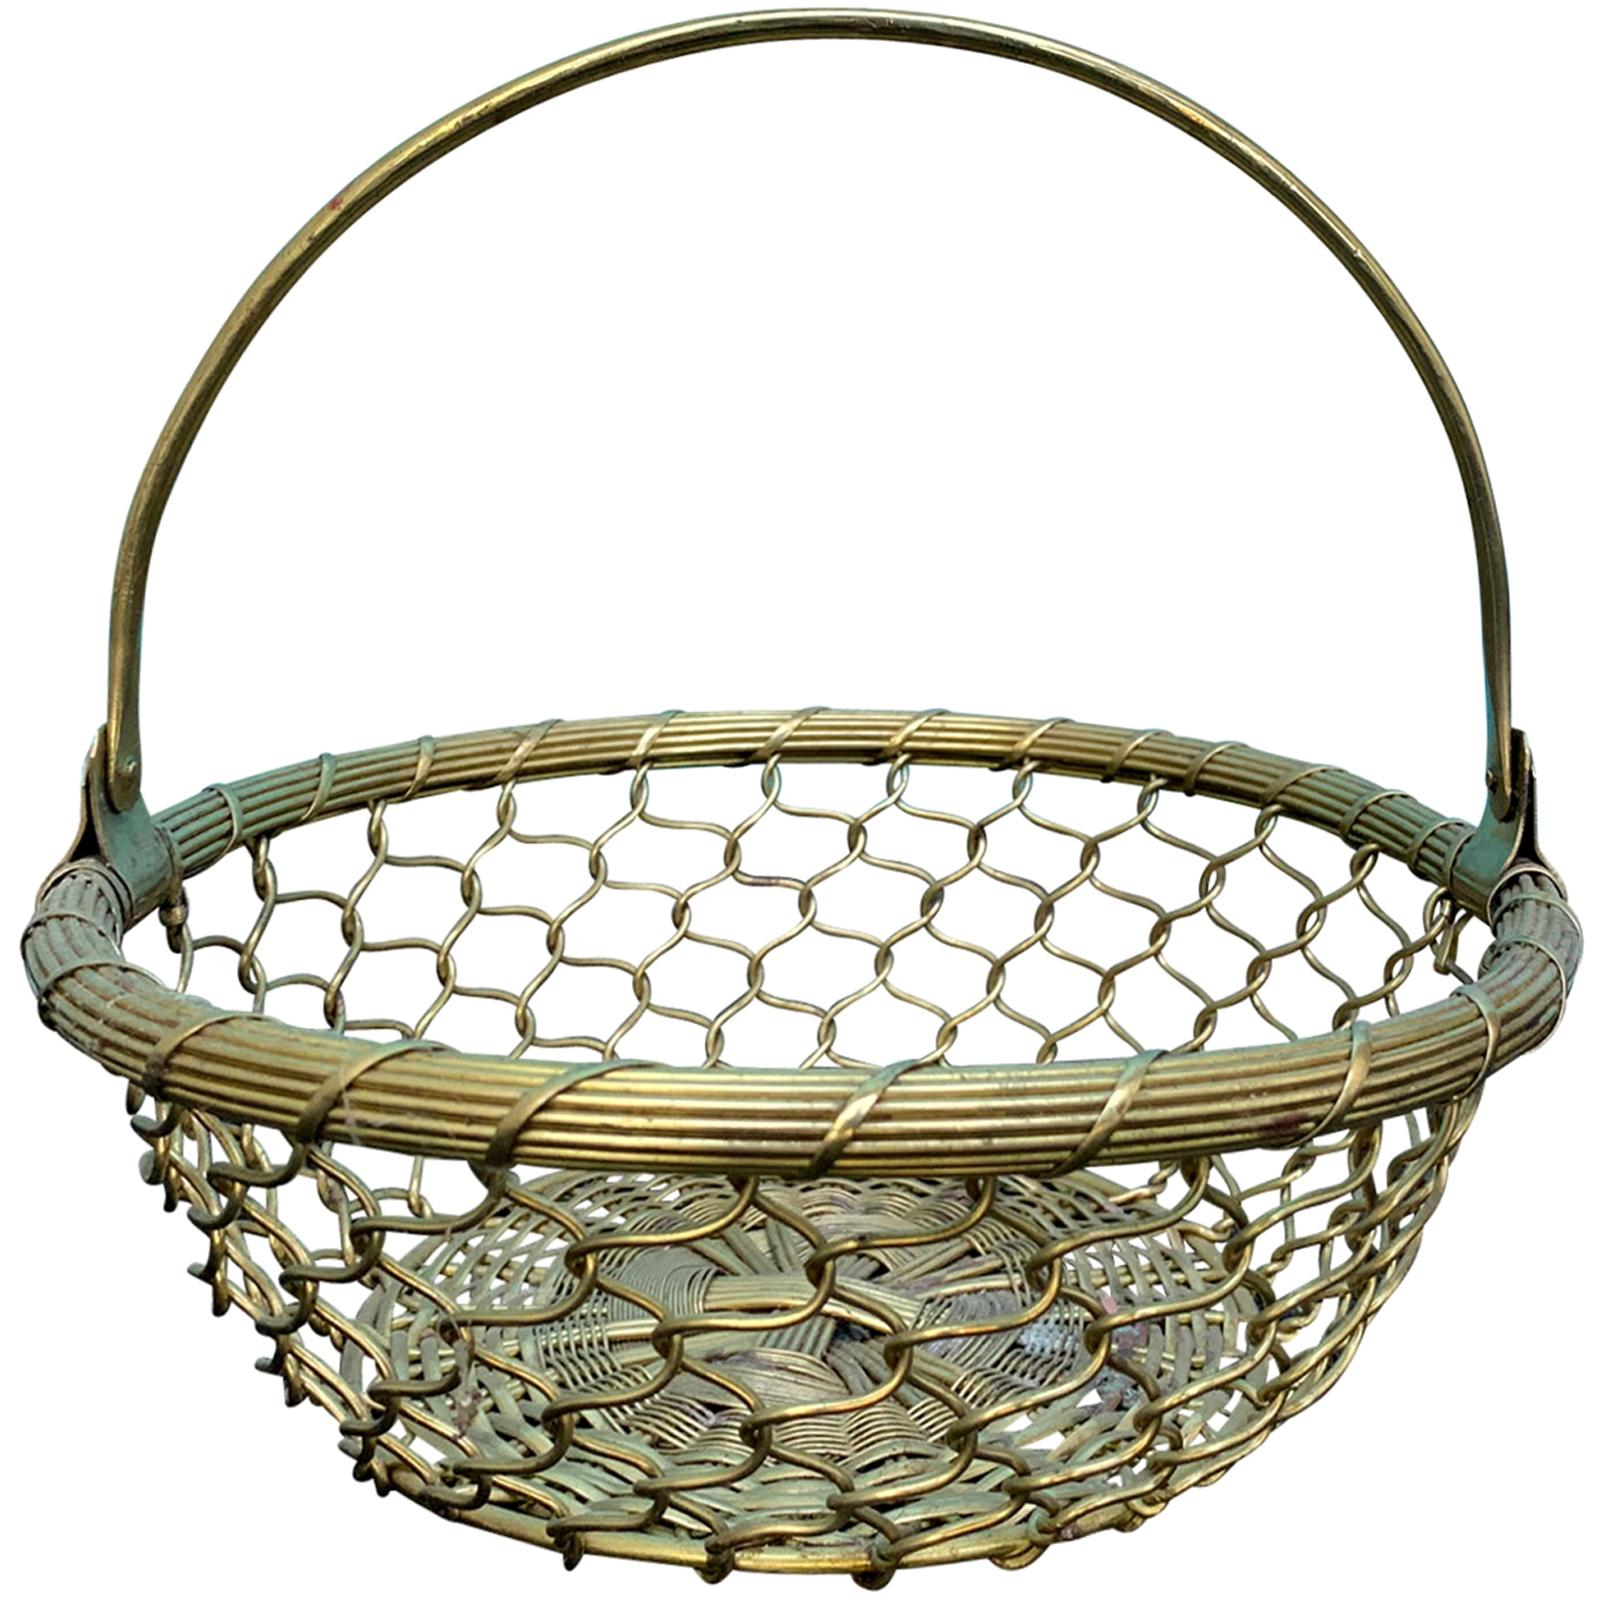 20th Century Round Woven Basket with Handle